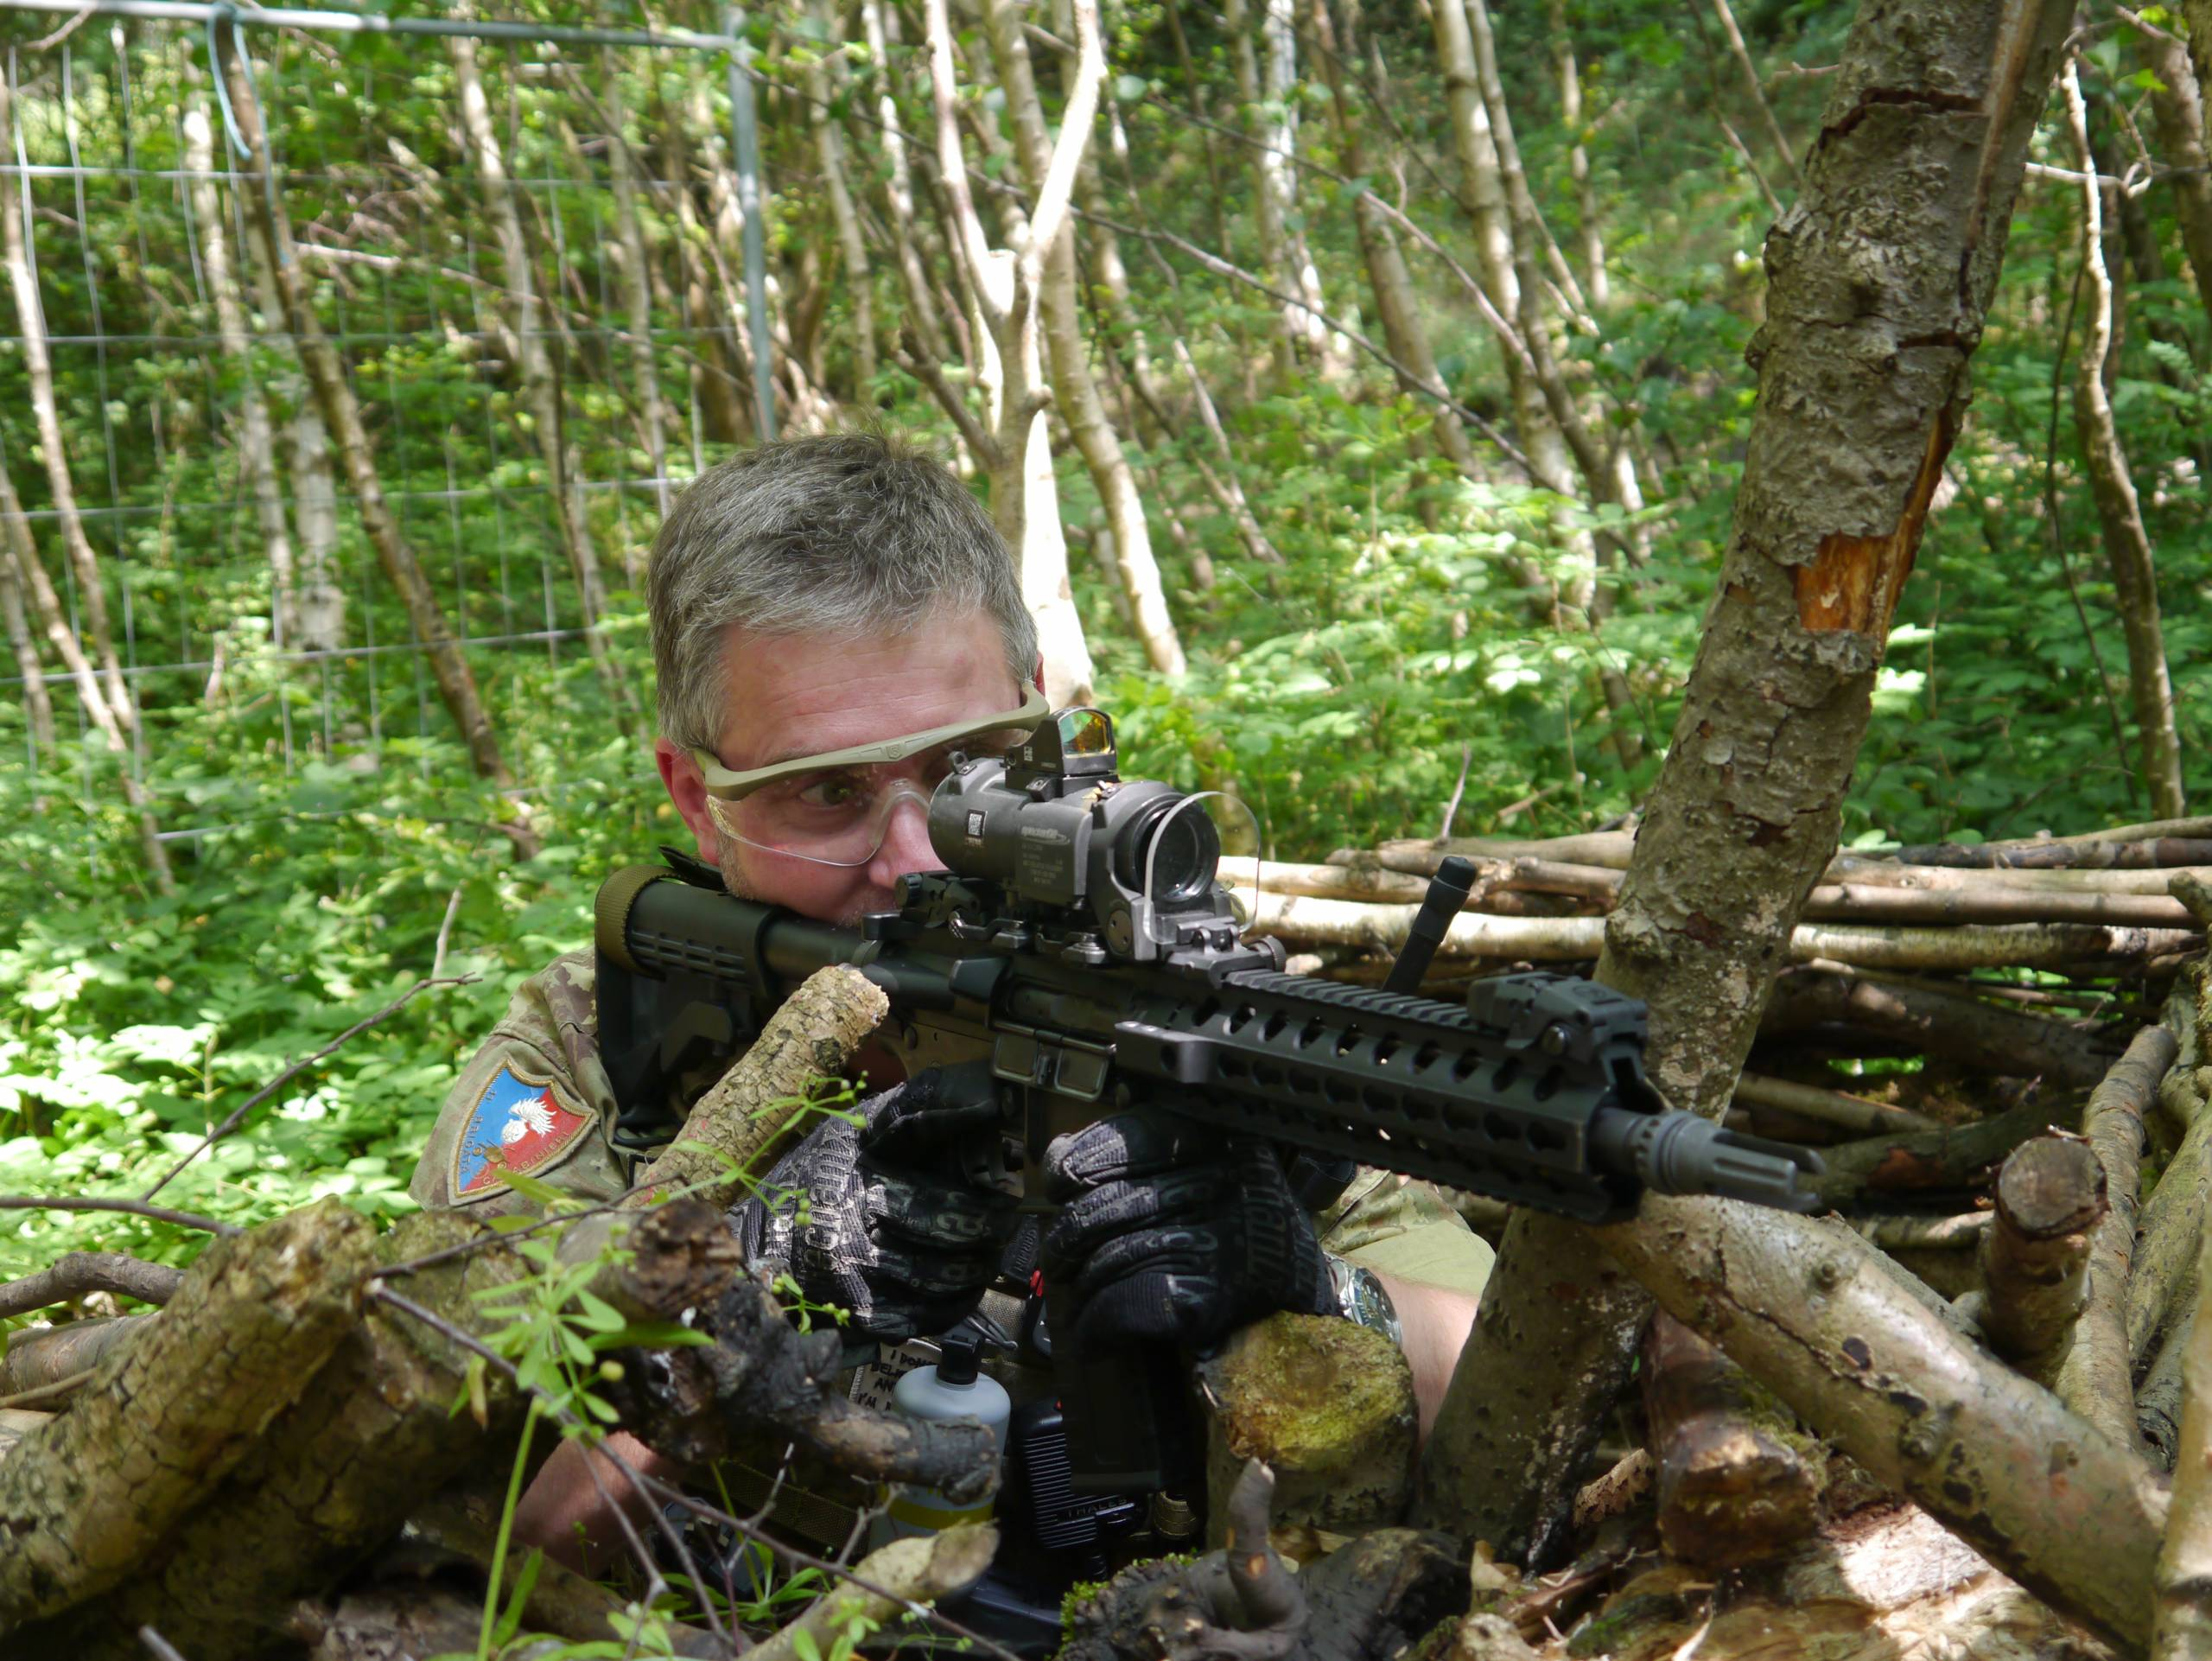 A Beginner's Guide To Airsoft Games featured image